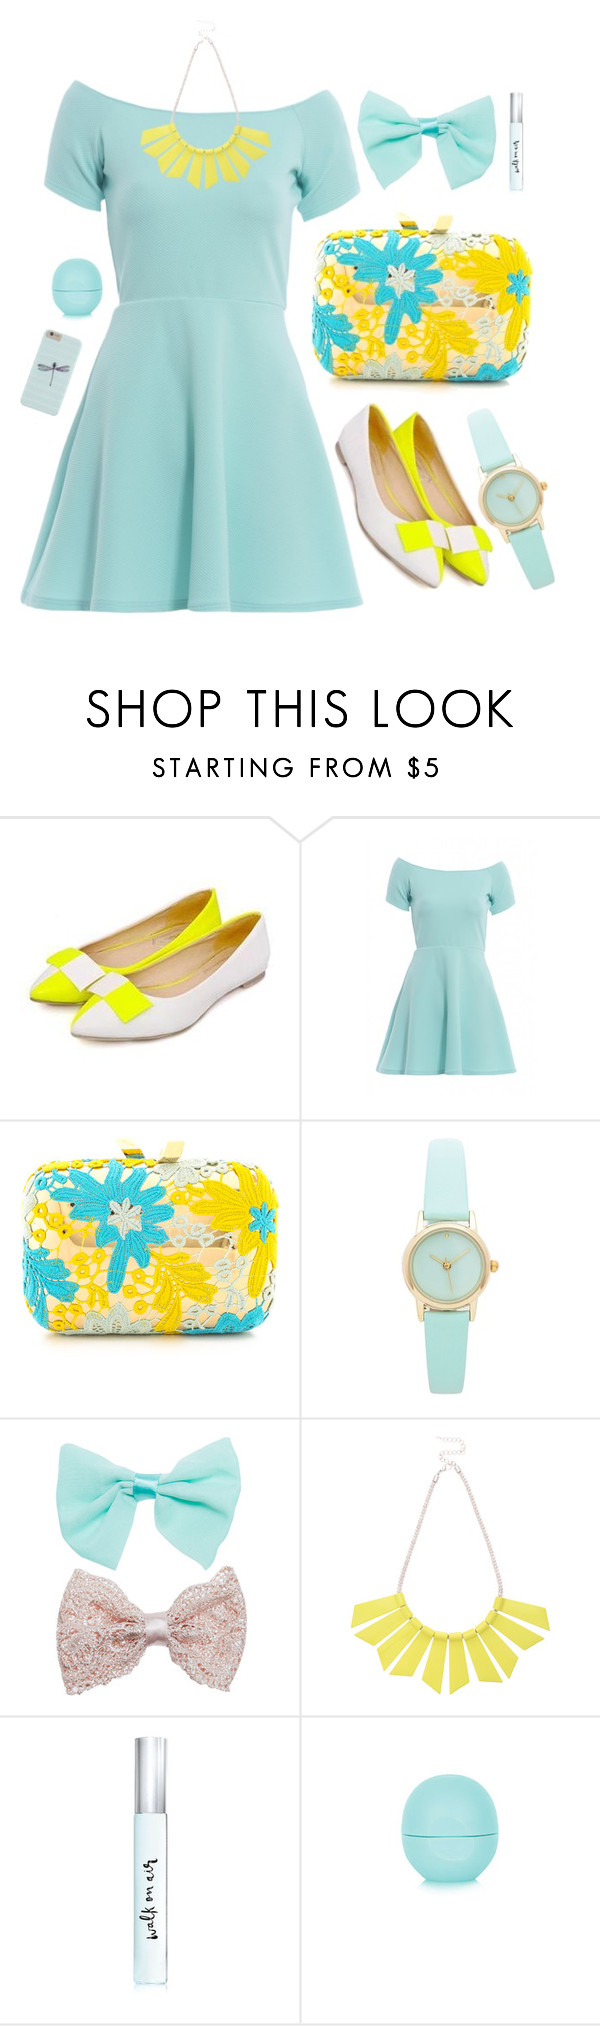 """""""Untitled #31"""" by ansdiaz ❤ liked on Polyvore featuring Nouvelle Footwear, AX Paris, KOTUR, Wet Seal, Oasis, Kate Spade and Topshop"""